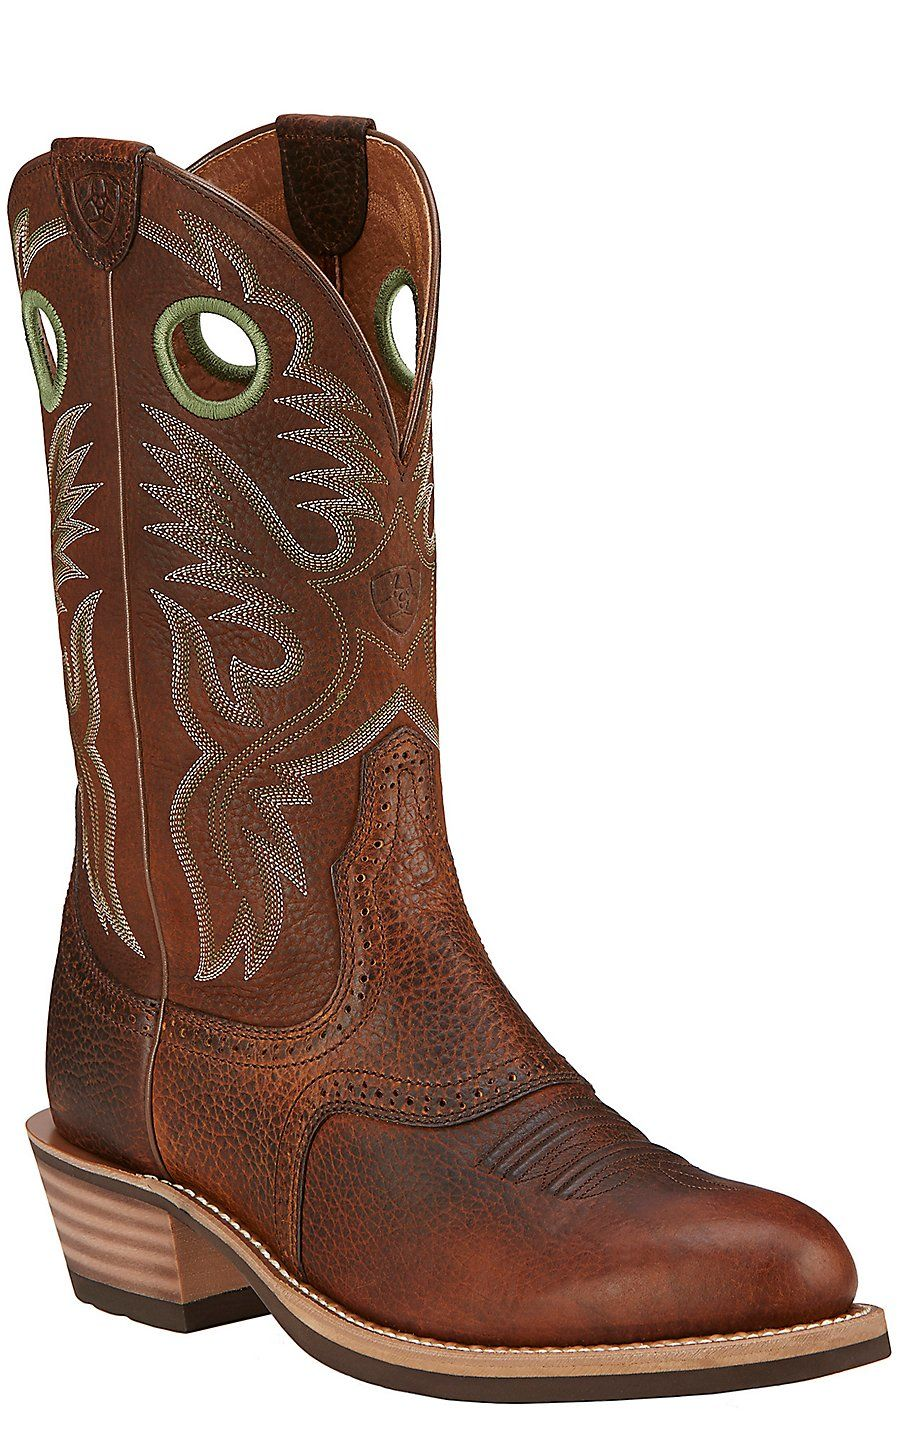 06ba8ef4f33983 Ariat Heritage Roughstock Men's Brown Oiled Rowdy Round Toe Western Boots |  Cavender's Western Boots,